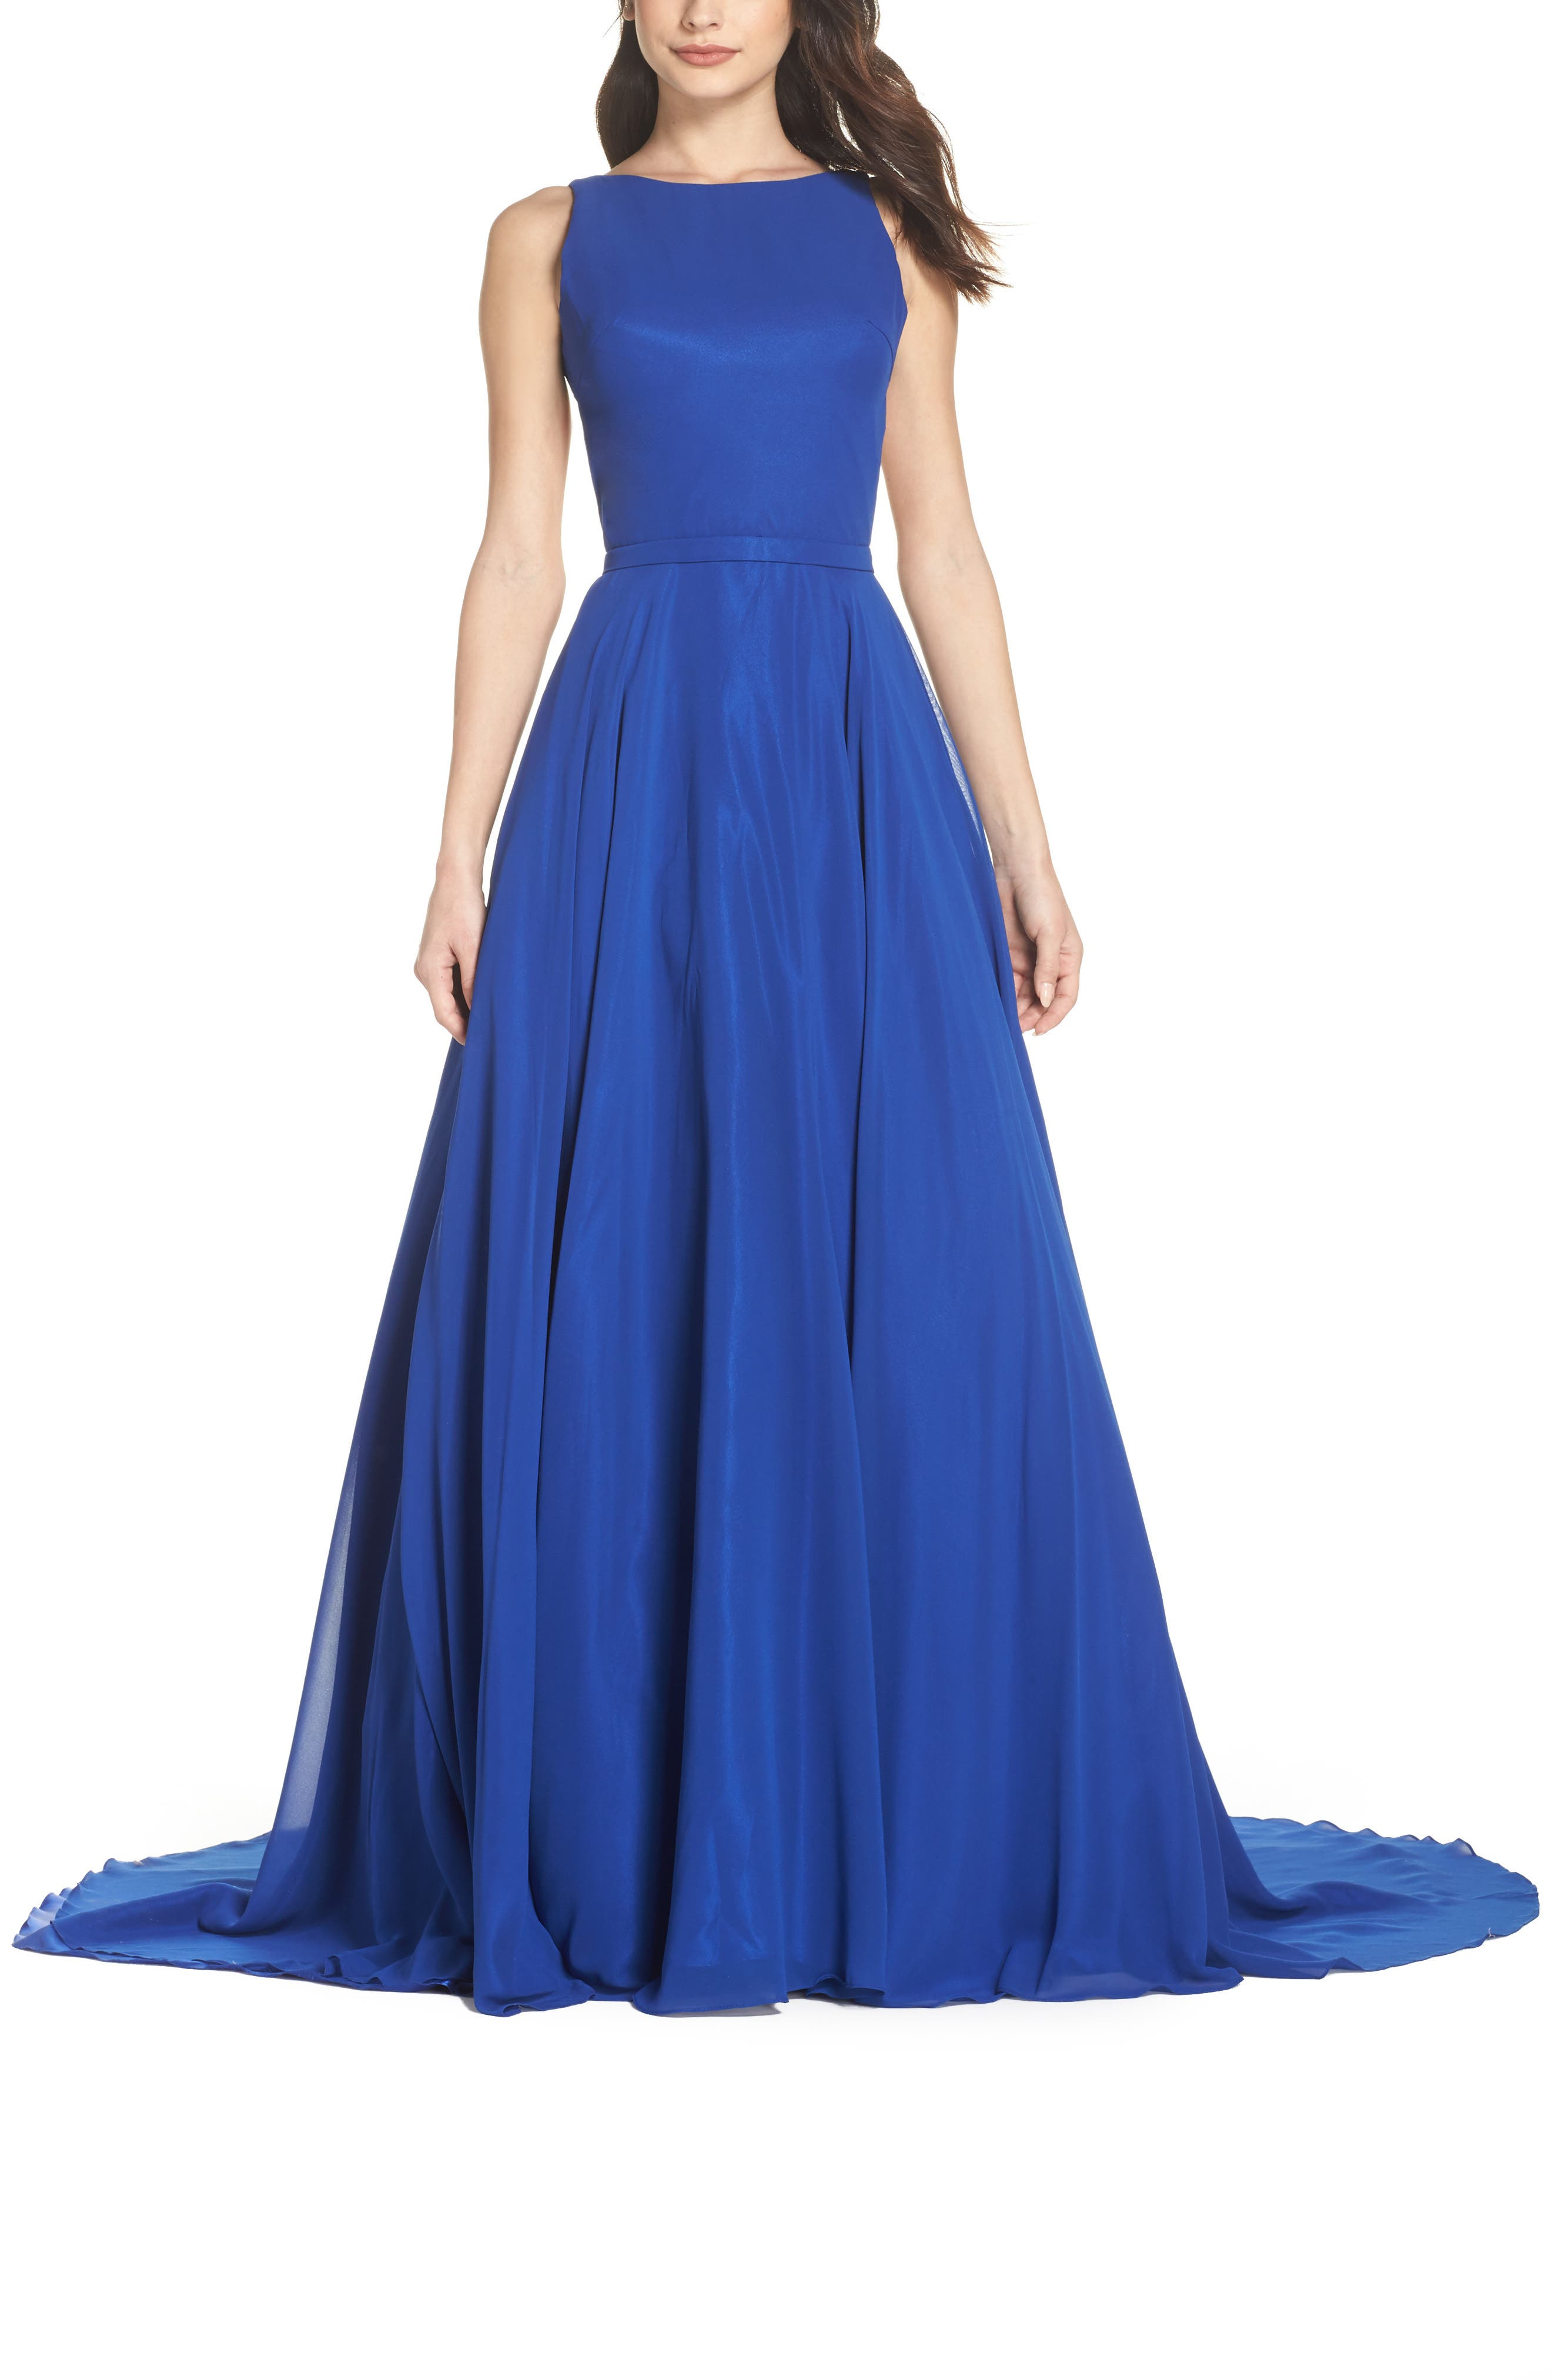 Mac Duggal Bateau Neck Ballgown,                             Main thumbnail 1, color,                             415